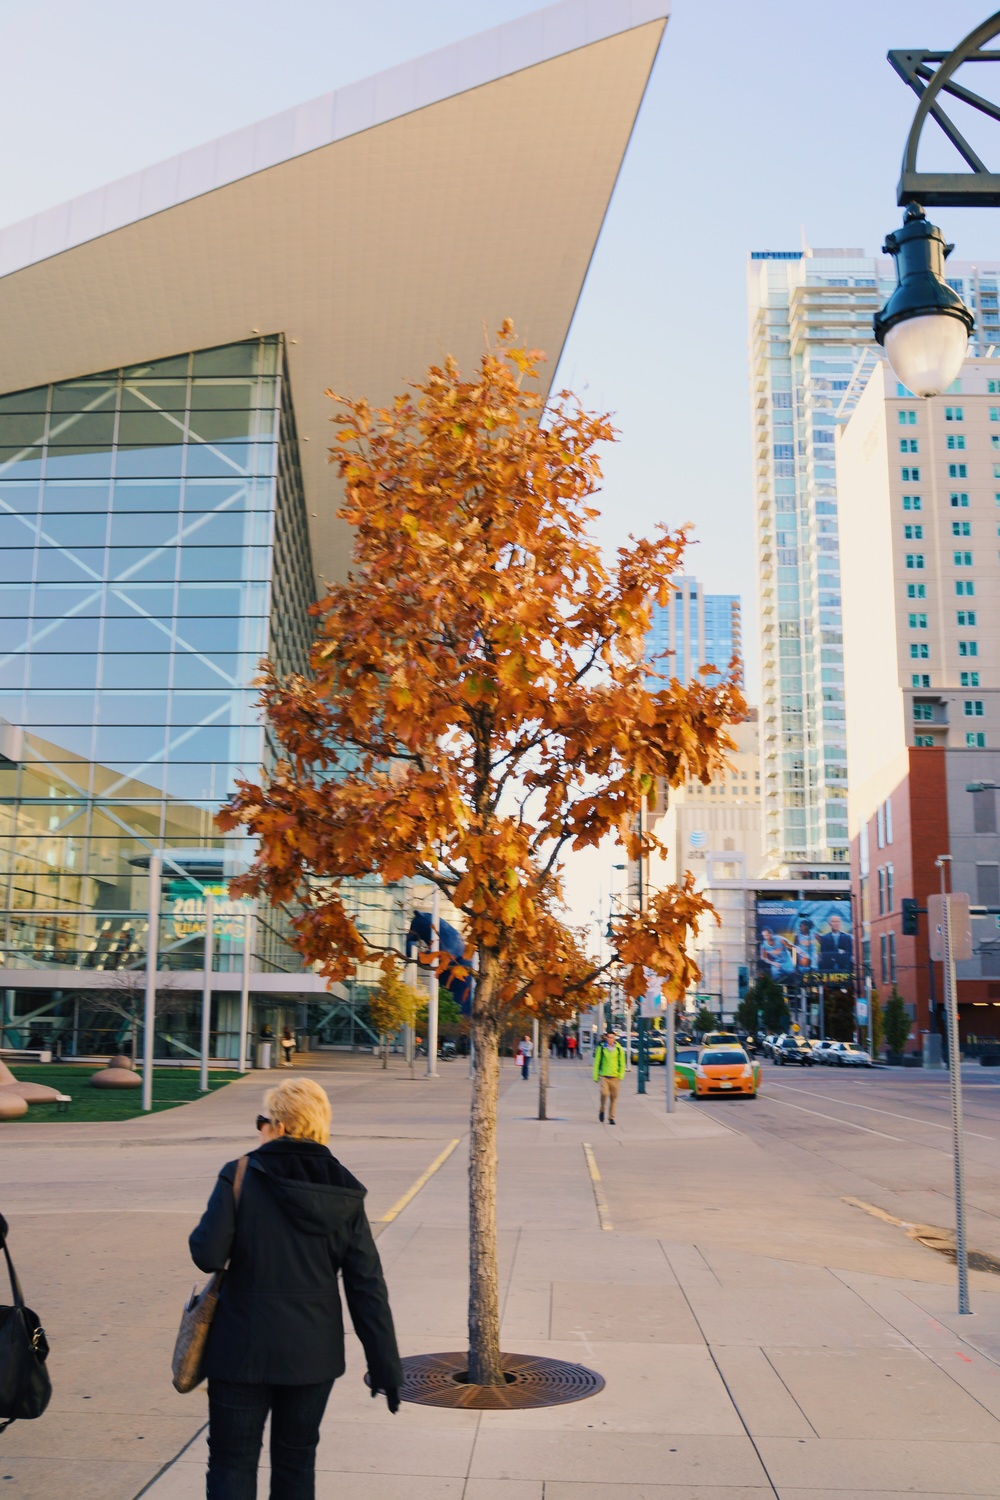 The Denver convention center was an easy walk from the hotels and the sunny weather made for a very pleasant convention experience.